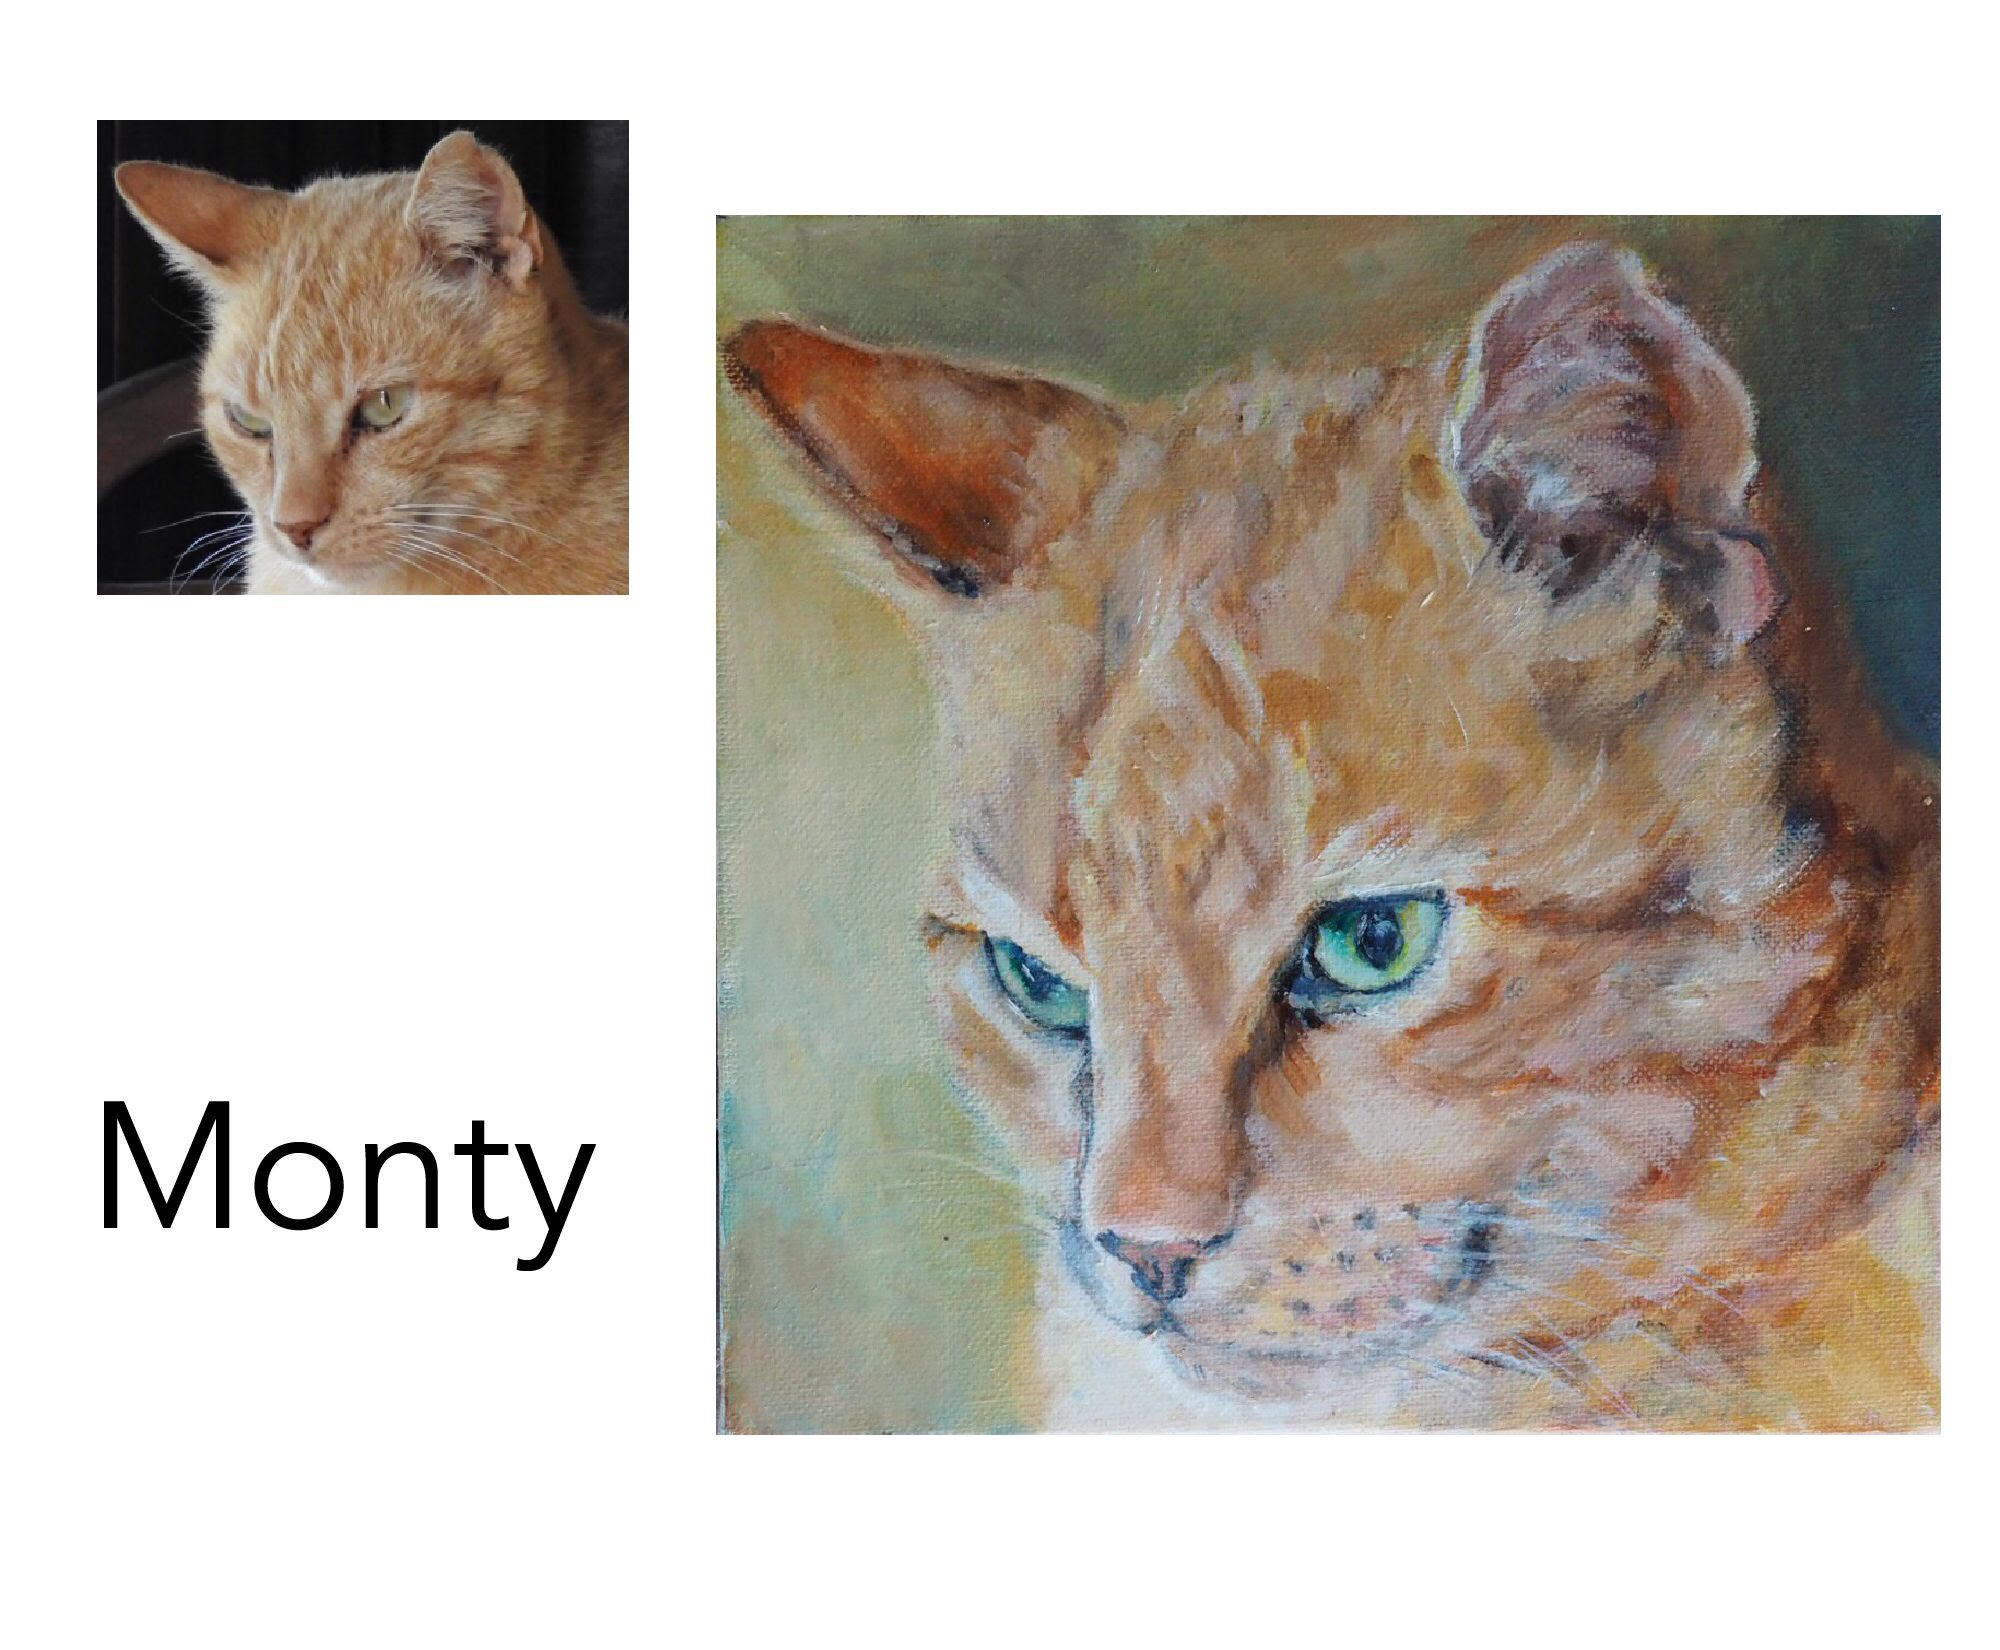 Domestic Ginger Tabby - Acrylic and oil on canvas 8' x 8' (20.32cm x 20.32cm)Artist's private collectionBellingen, NSW————————————Monty is a lovely affectionate boy who loves cuddles, milk, ratting and harassing the dog!